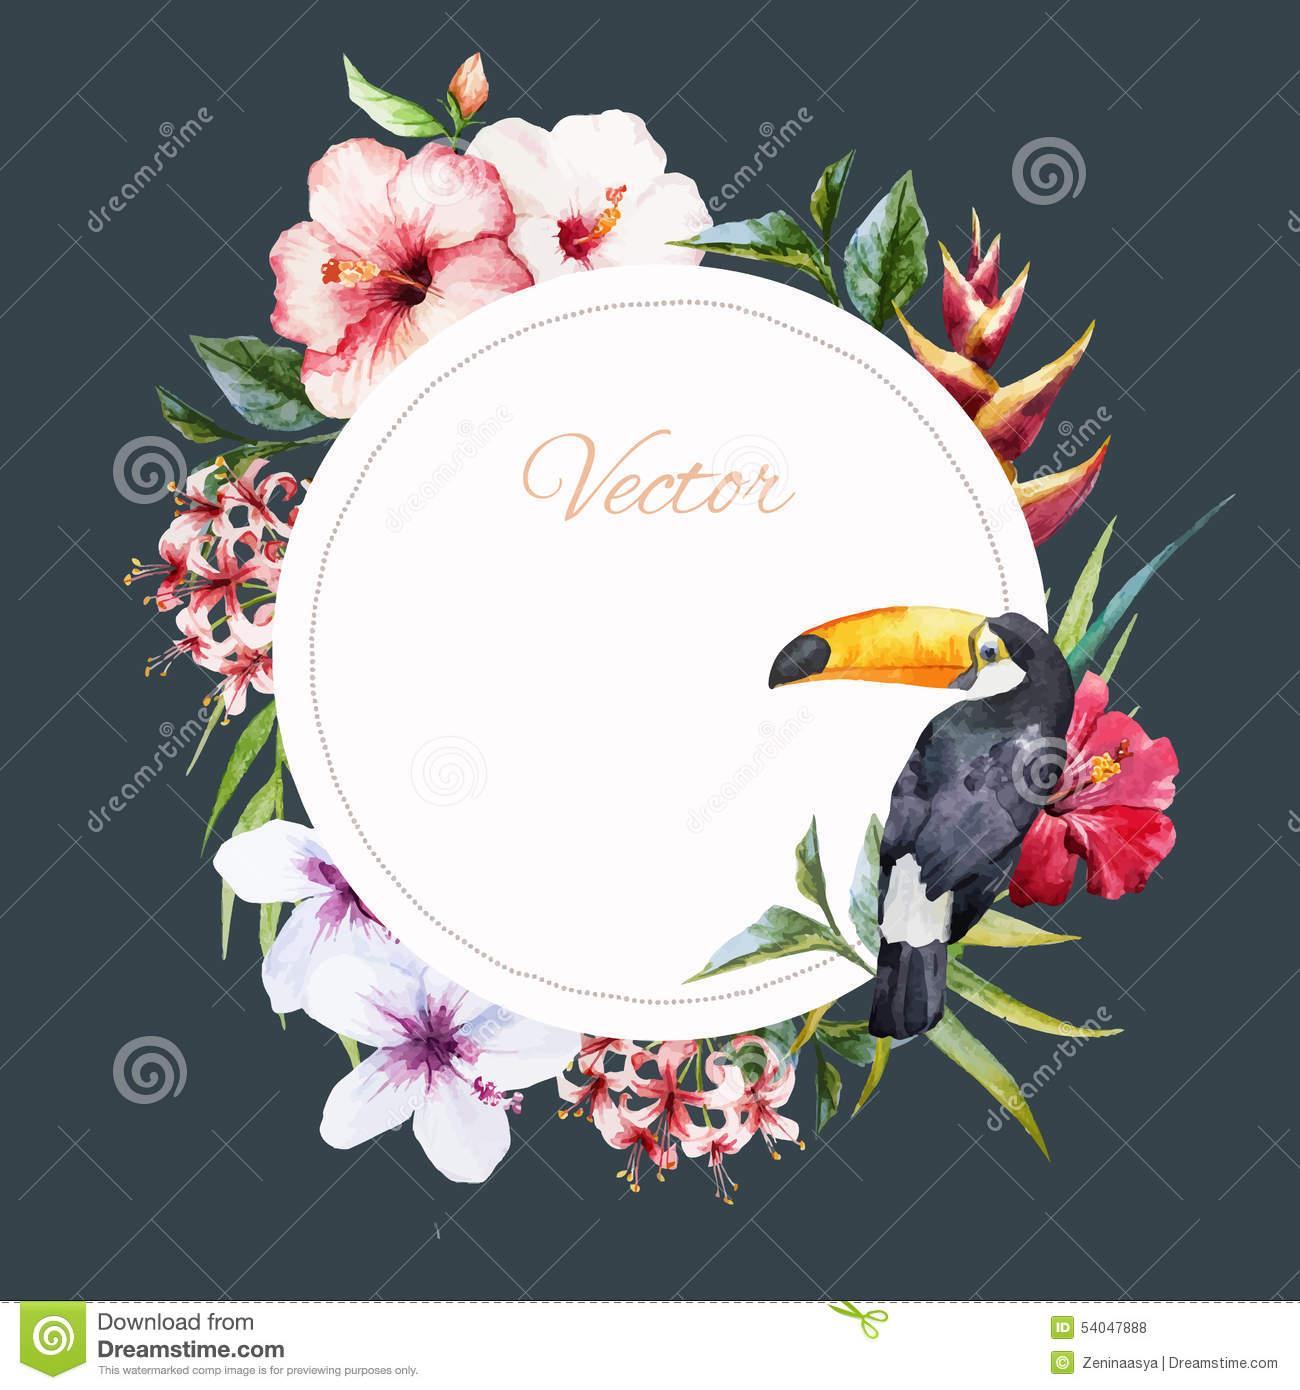 Wedding frame stock vector. Illustration of nature, invitation ...